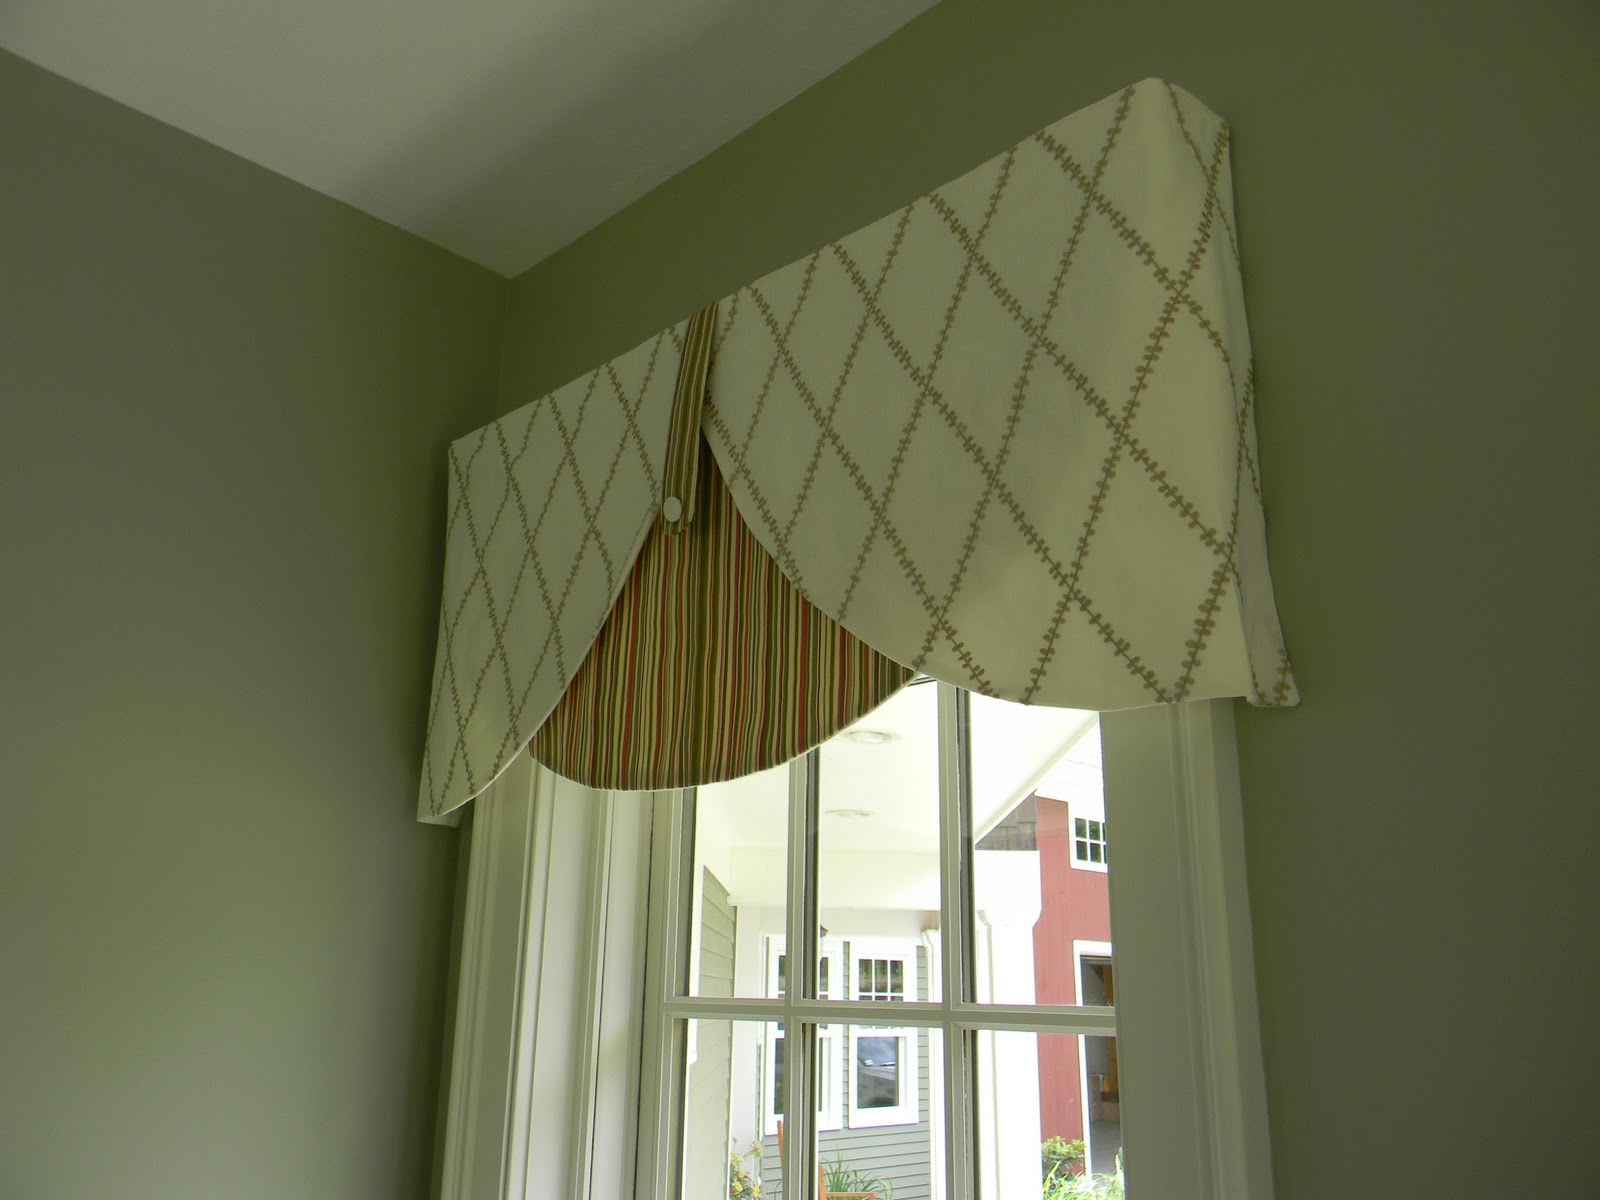 Julie fergus asid nh interior designer board mounted for Window valance